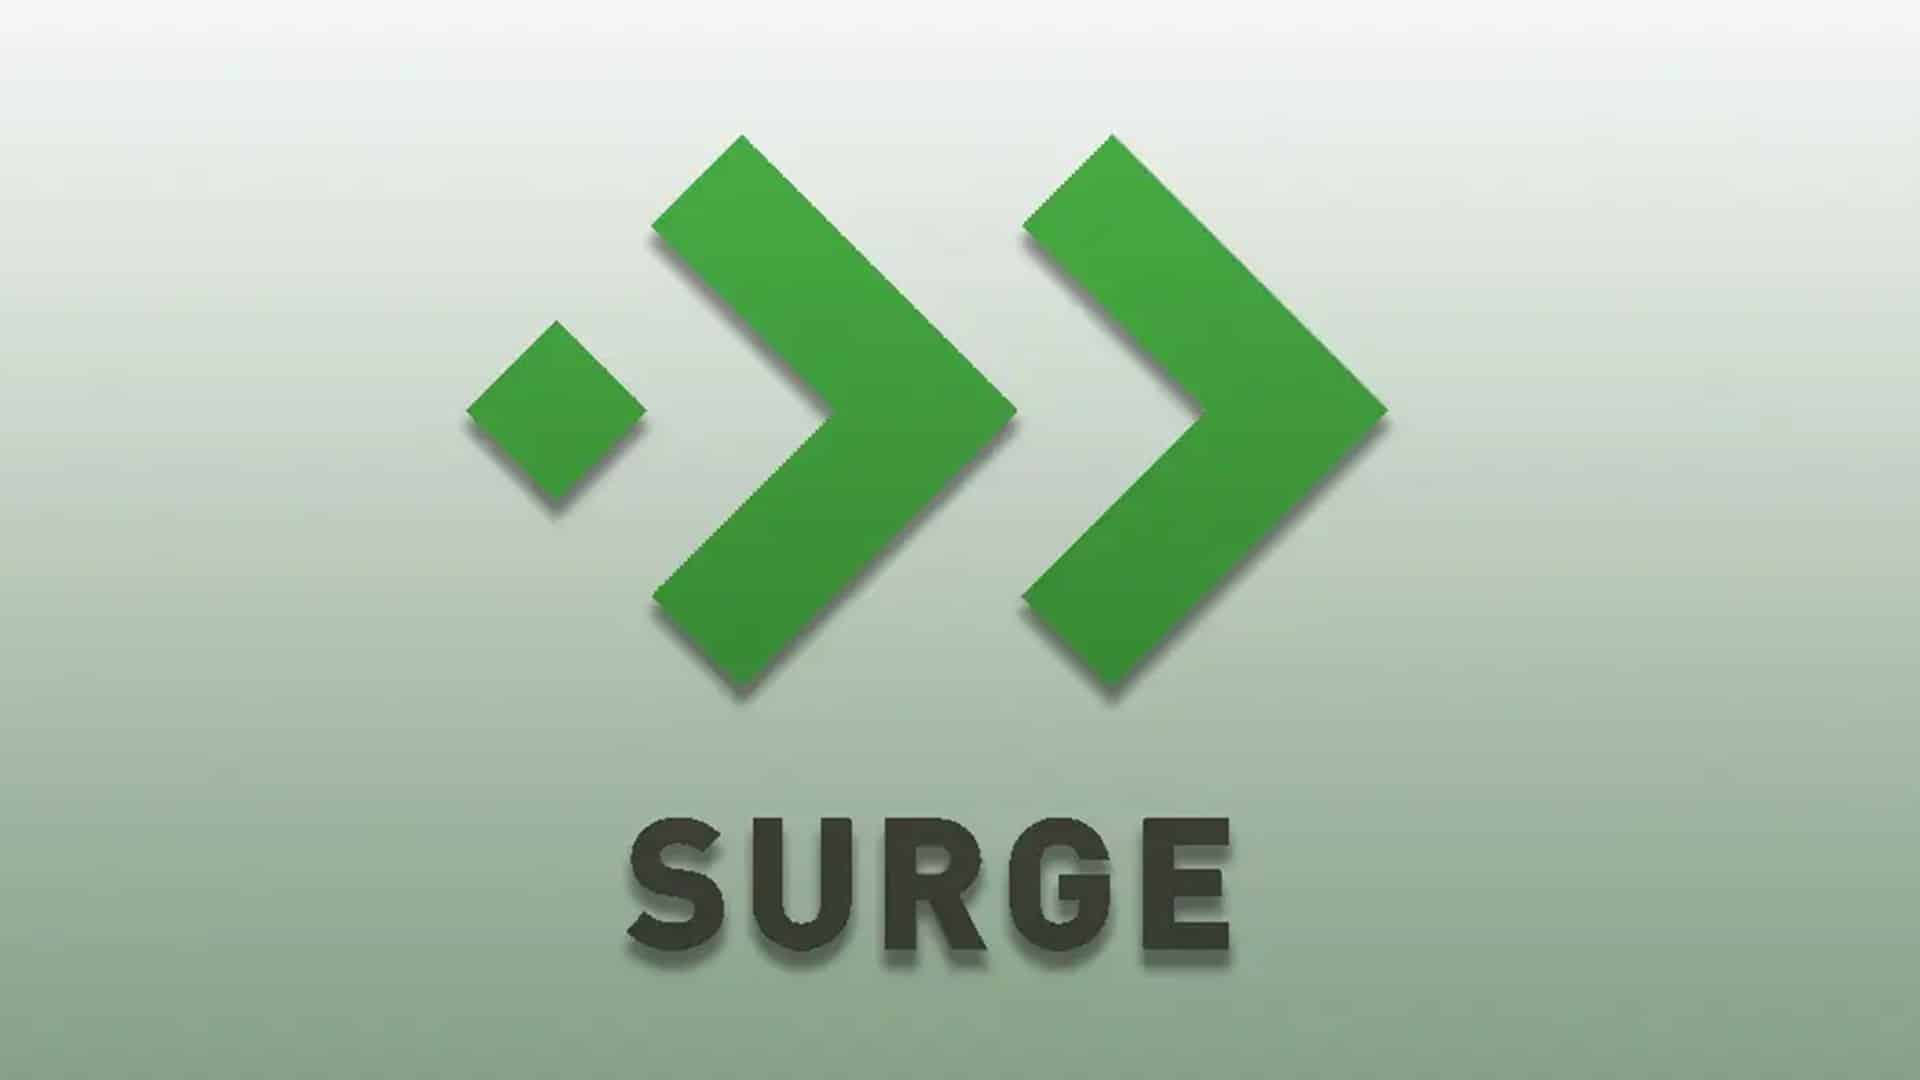 Sequoia Capital selects 23 startups for fifth batch of it accelerator program Surge